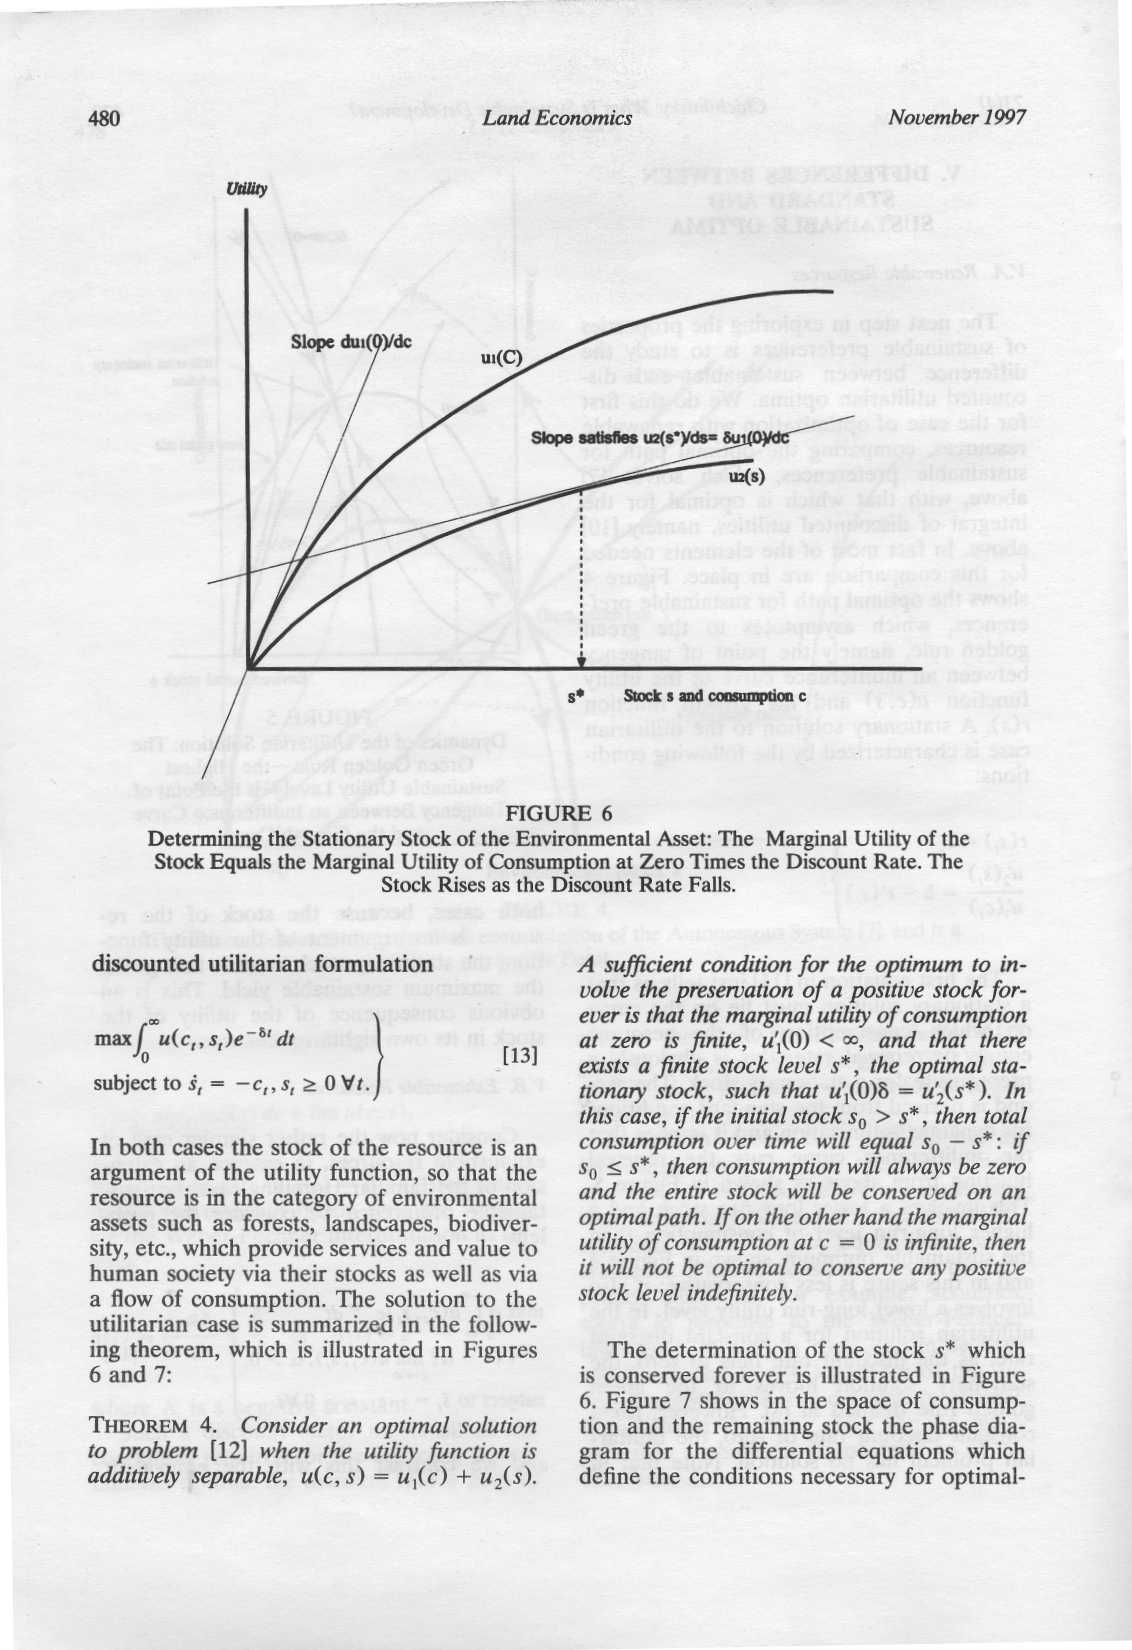 480 Land Economics November 1997 FIGURE 6 Determining the Stationary Stock of the Environmental Asset : The Marginal Utility of the Stock Equals the Marginal Utility of Consumption at Zero Times the